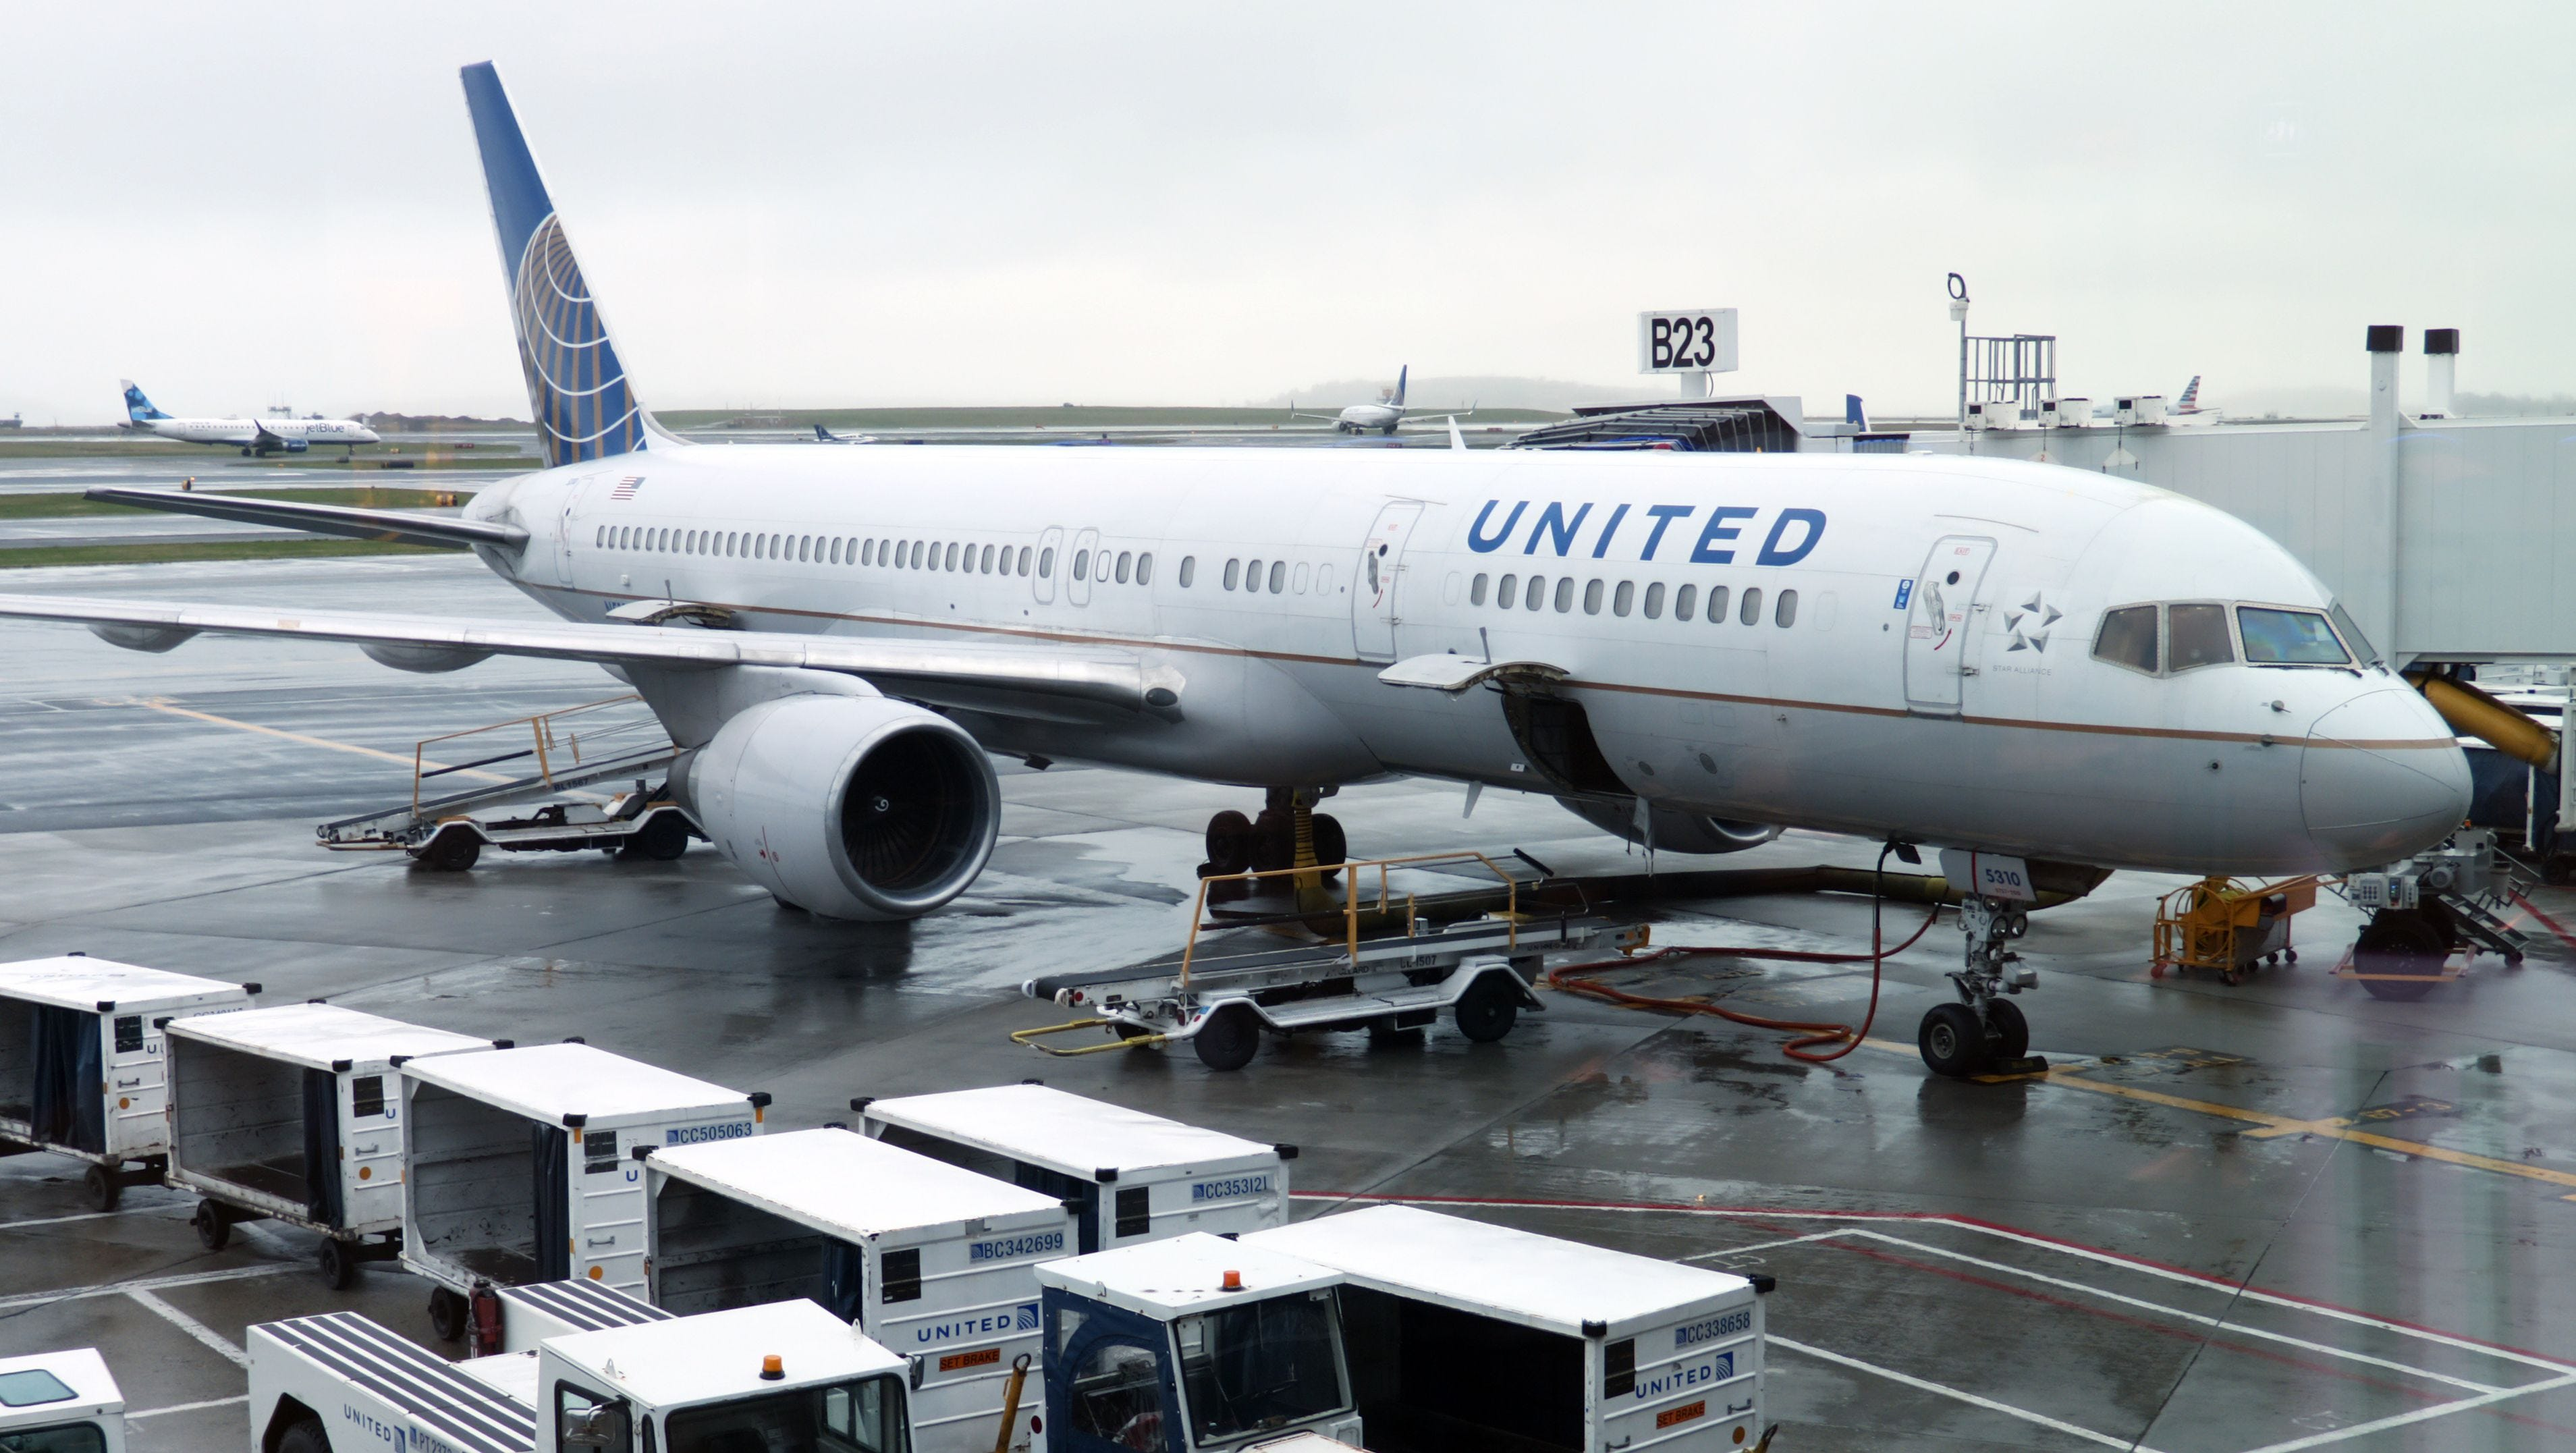 United Airlines resuming normal operations after all US, Canada flights briefly halted